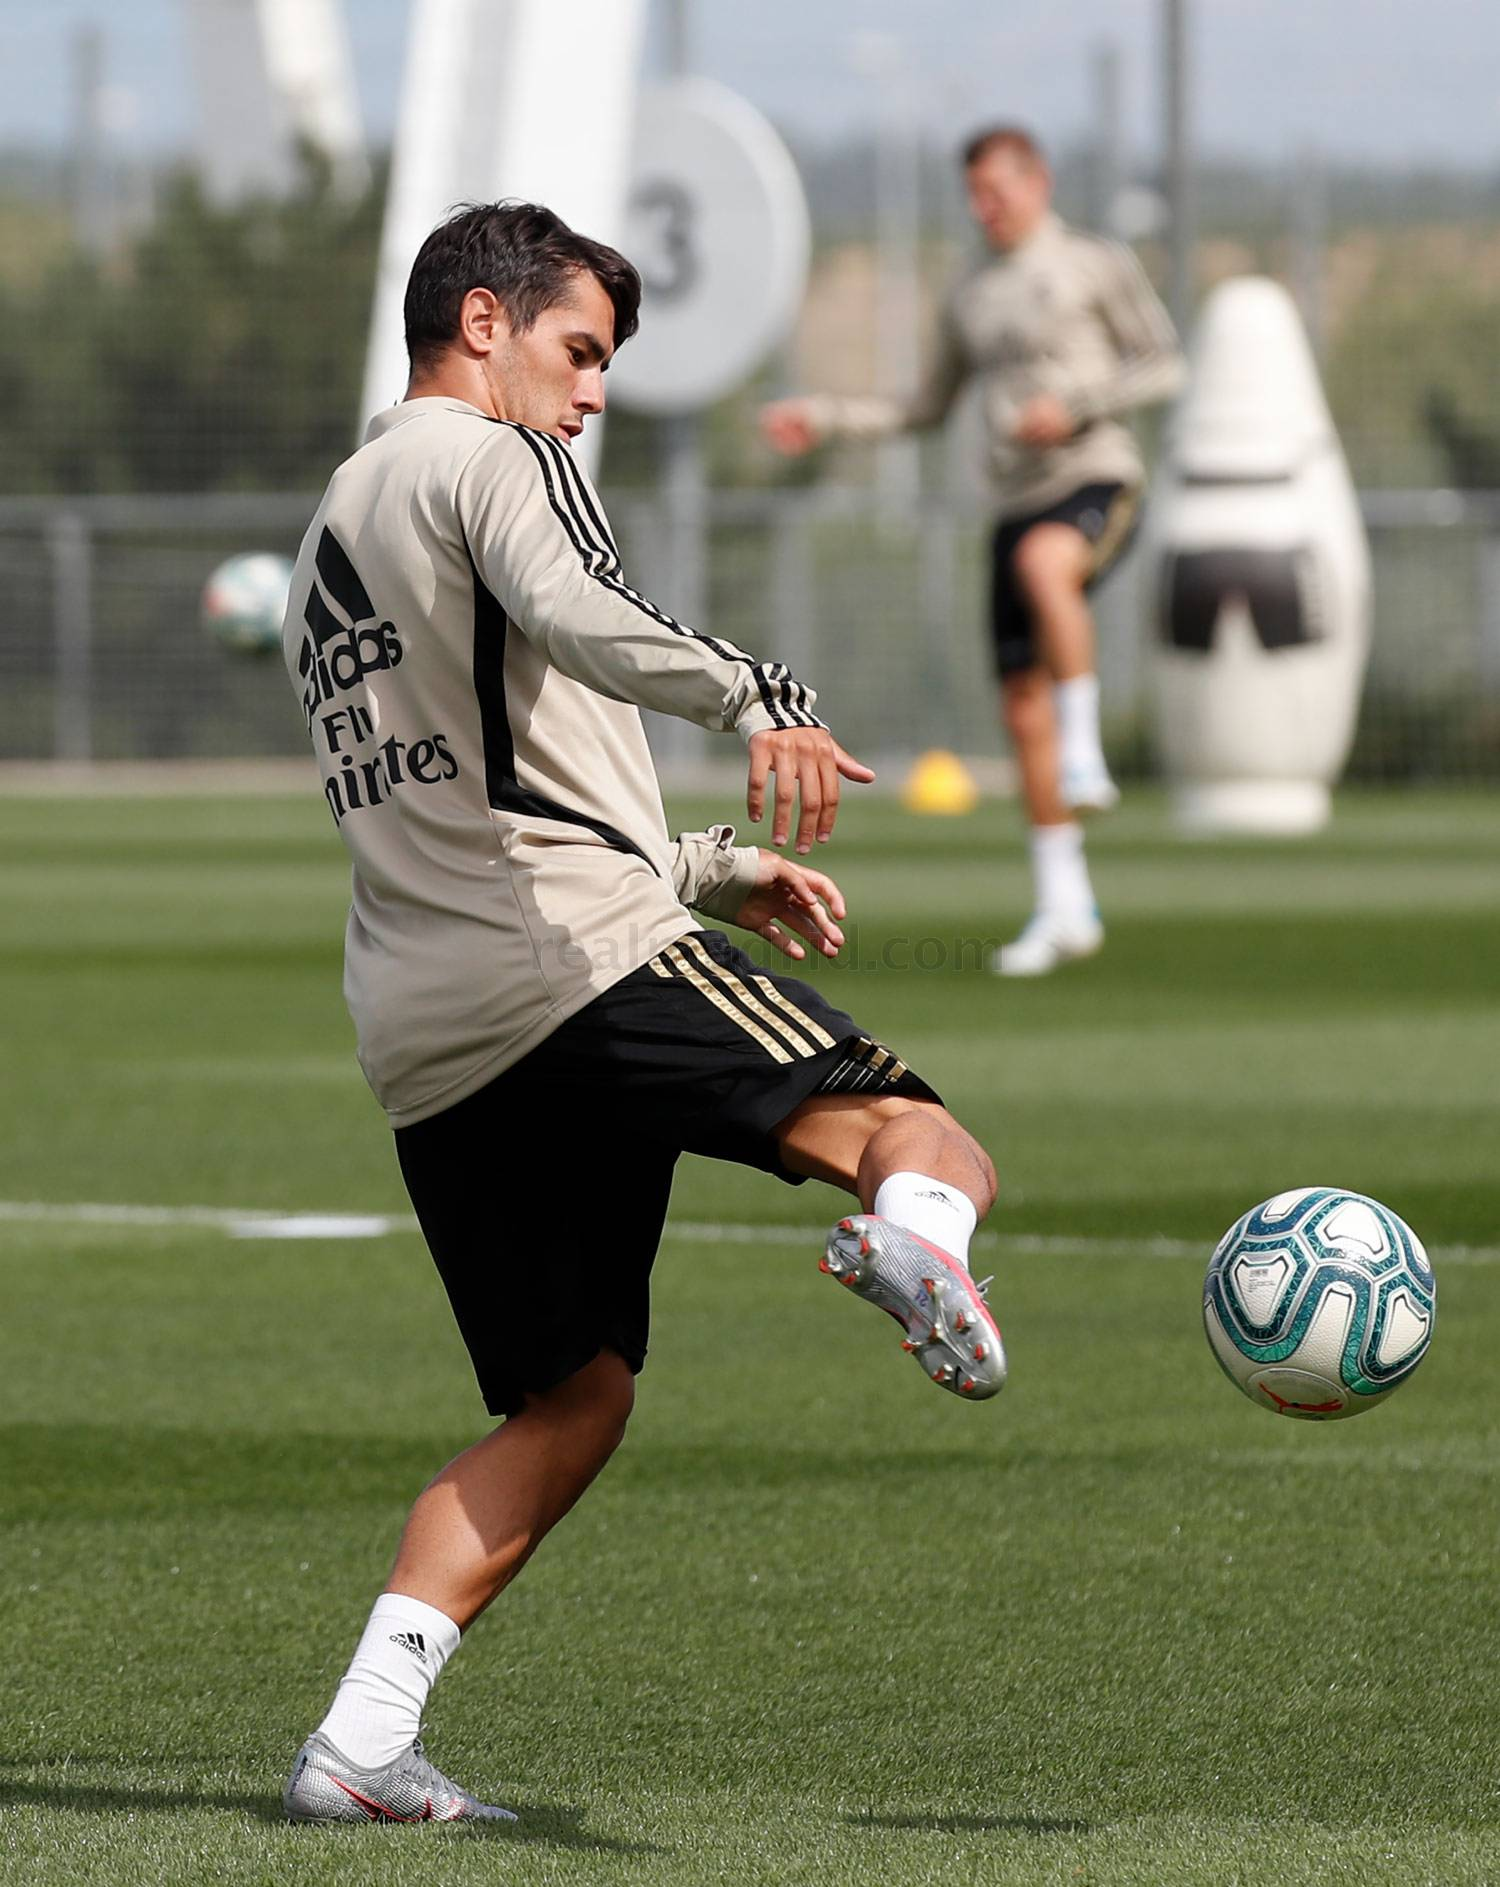 Real Madrid - Entrenamiento del Real Madrid  - 16-06-2020